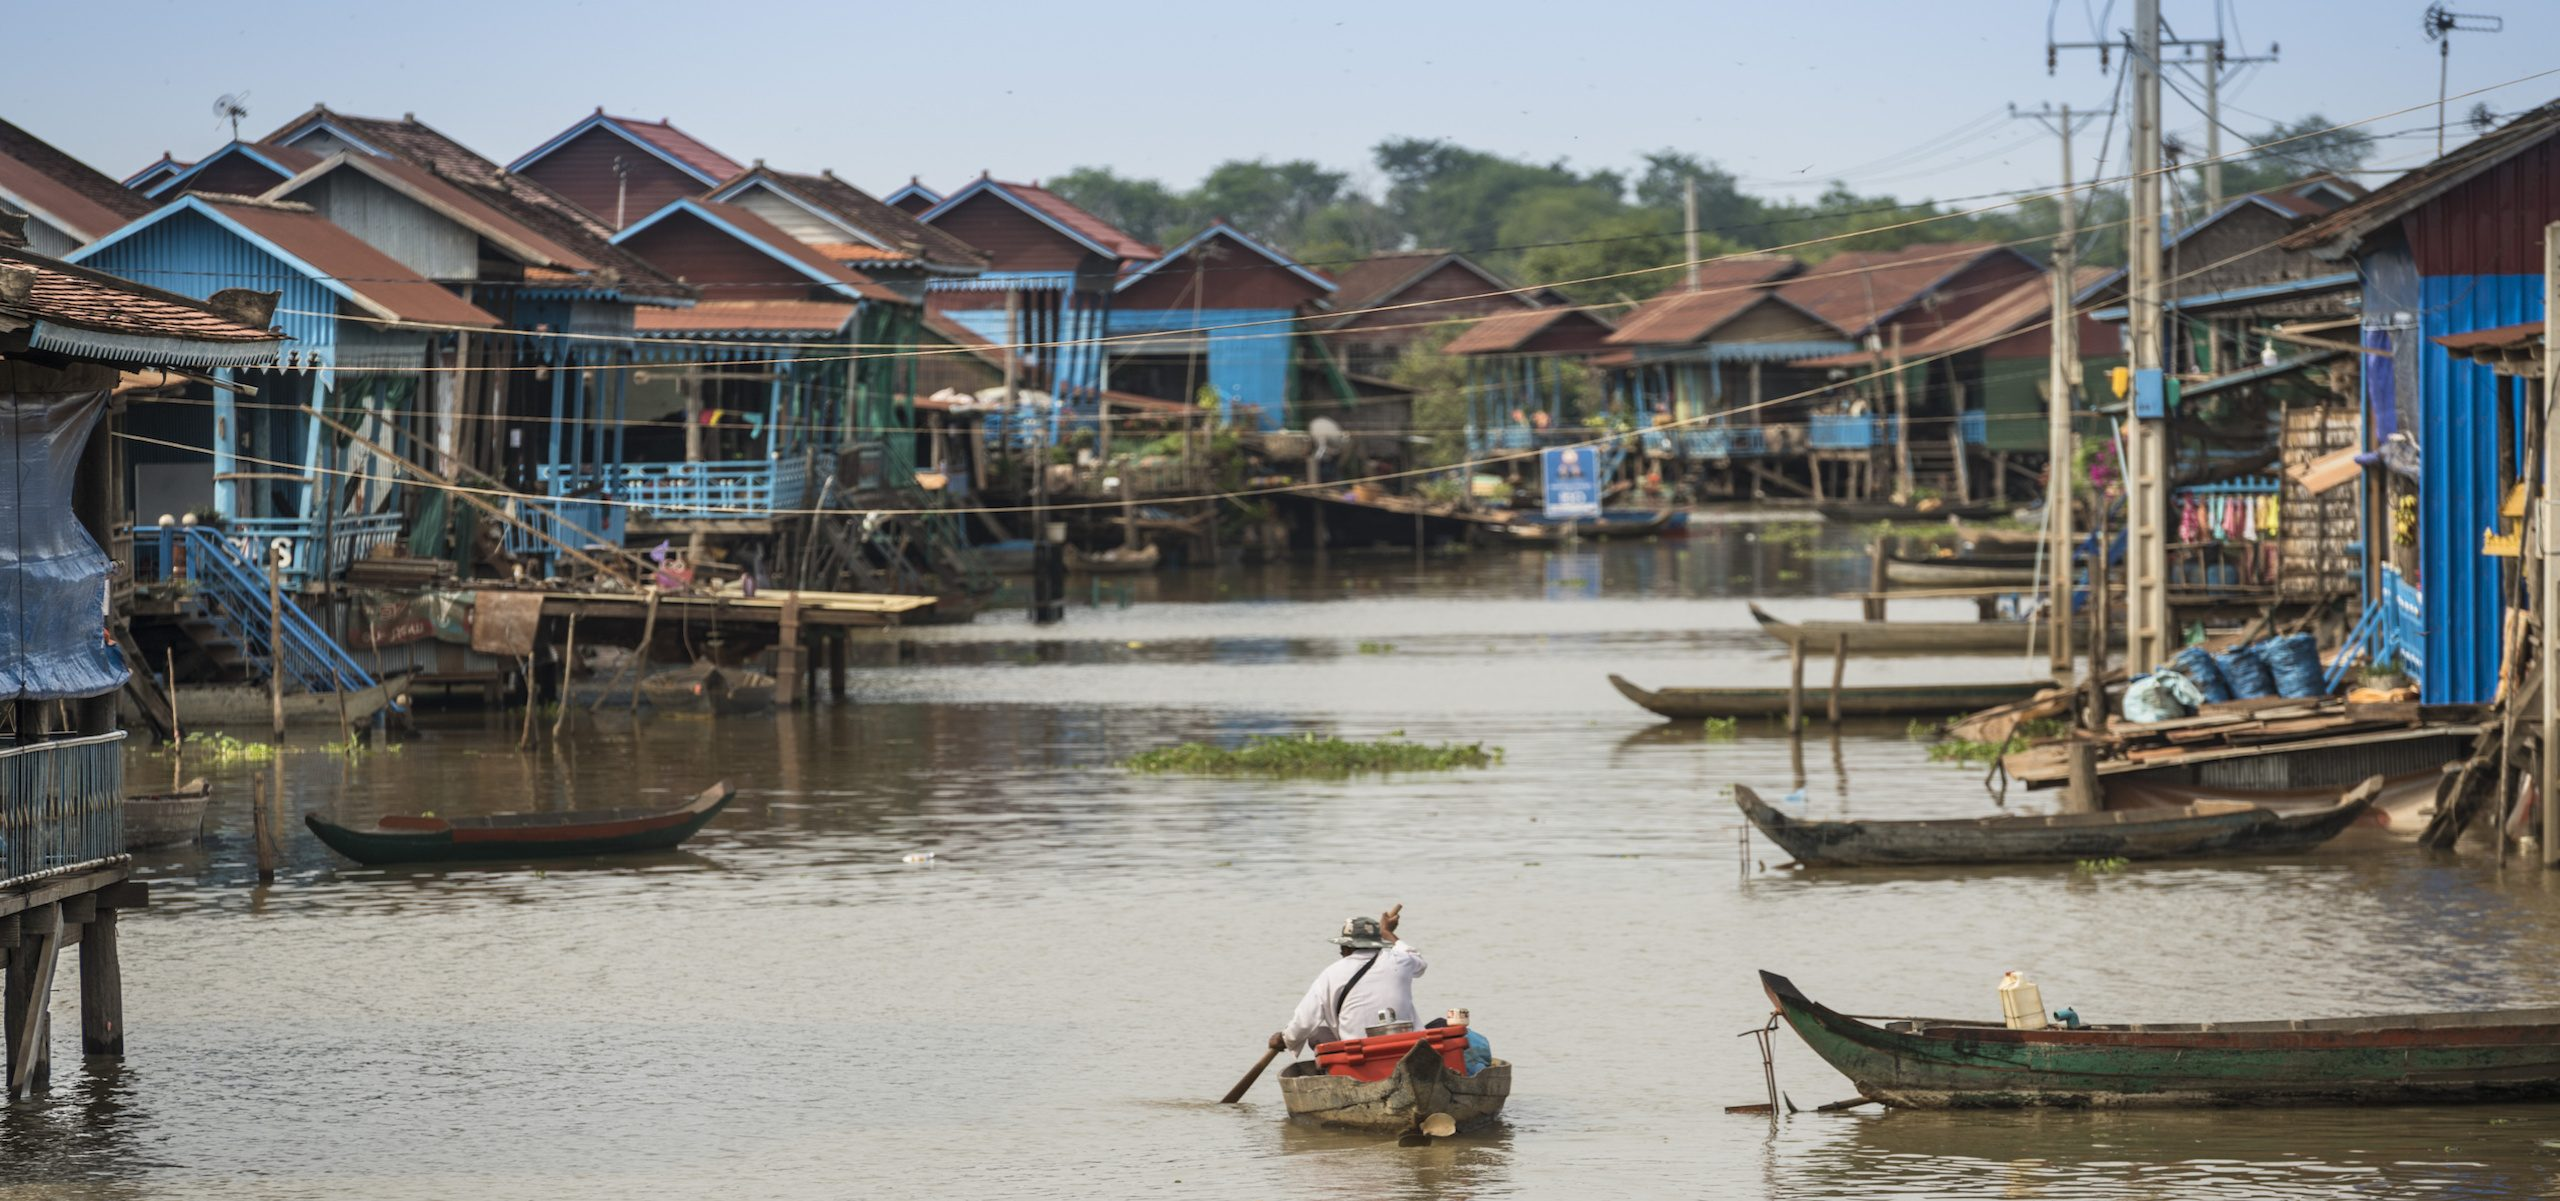 Amansara, Siem Reap, Cambodia, destination, activities, Tonle Sap, boats, floating villages, stilted villages